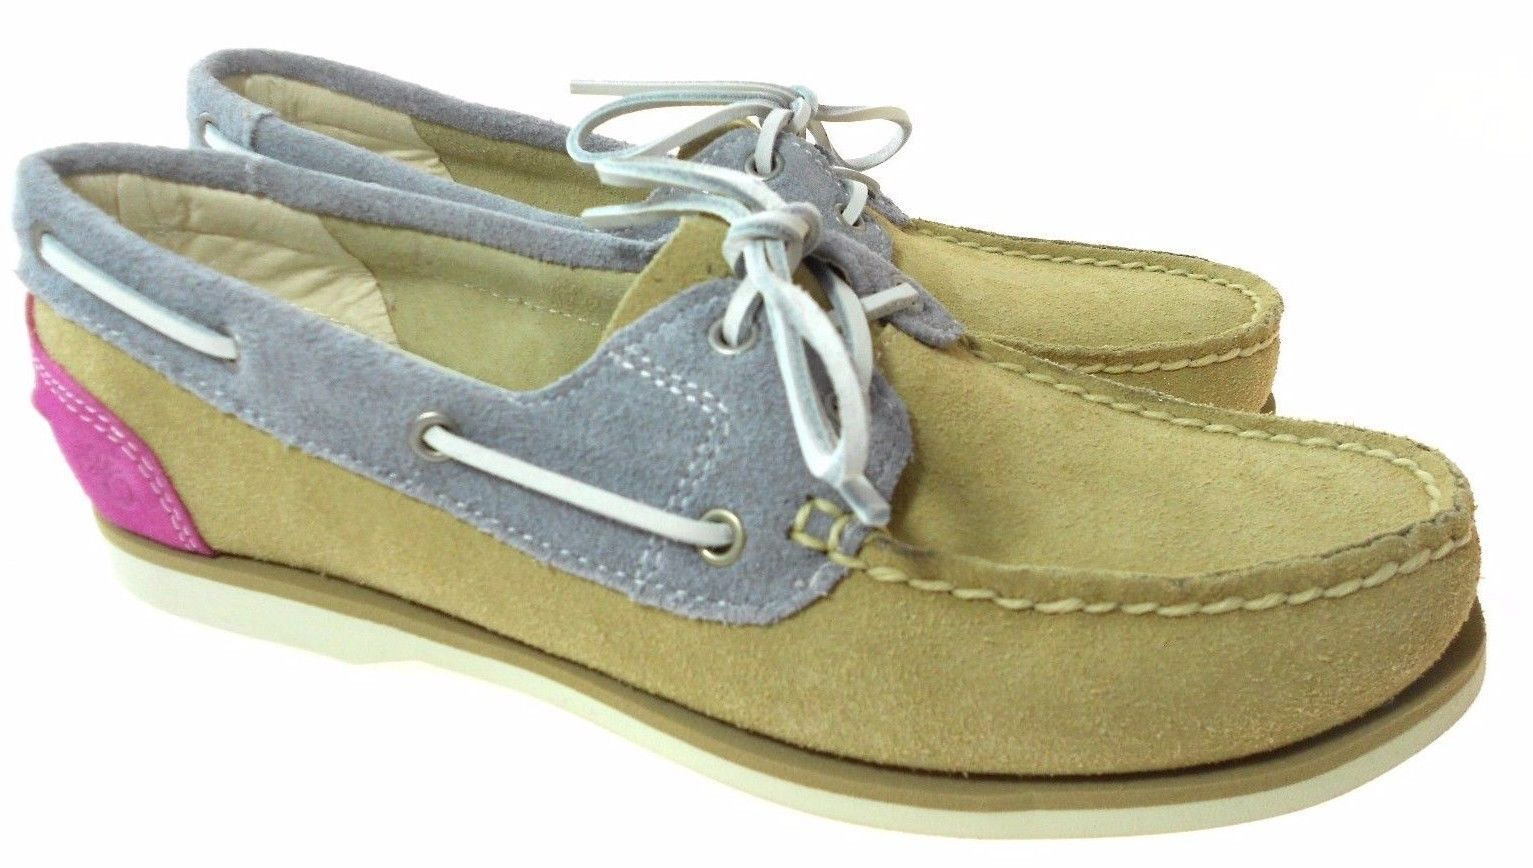 Primary image for TIMBERLAND 8018B CLASSIC WOMEN'S SUEDE BOAT SHOES